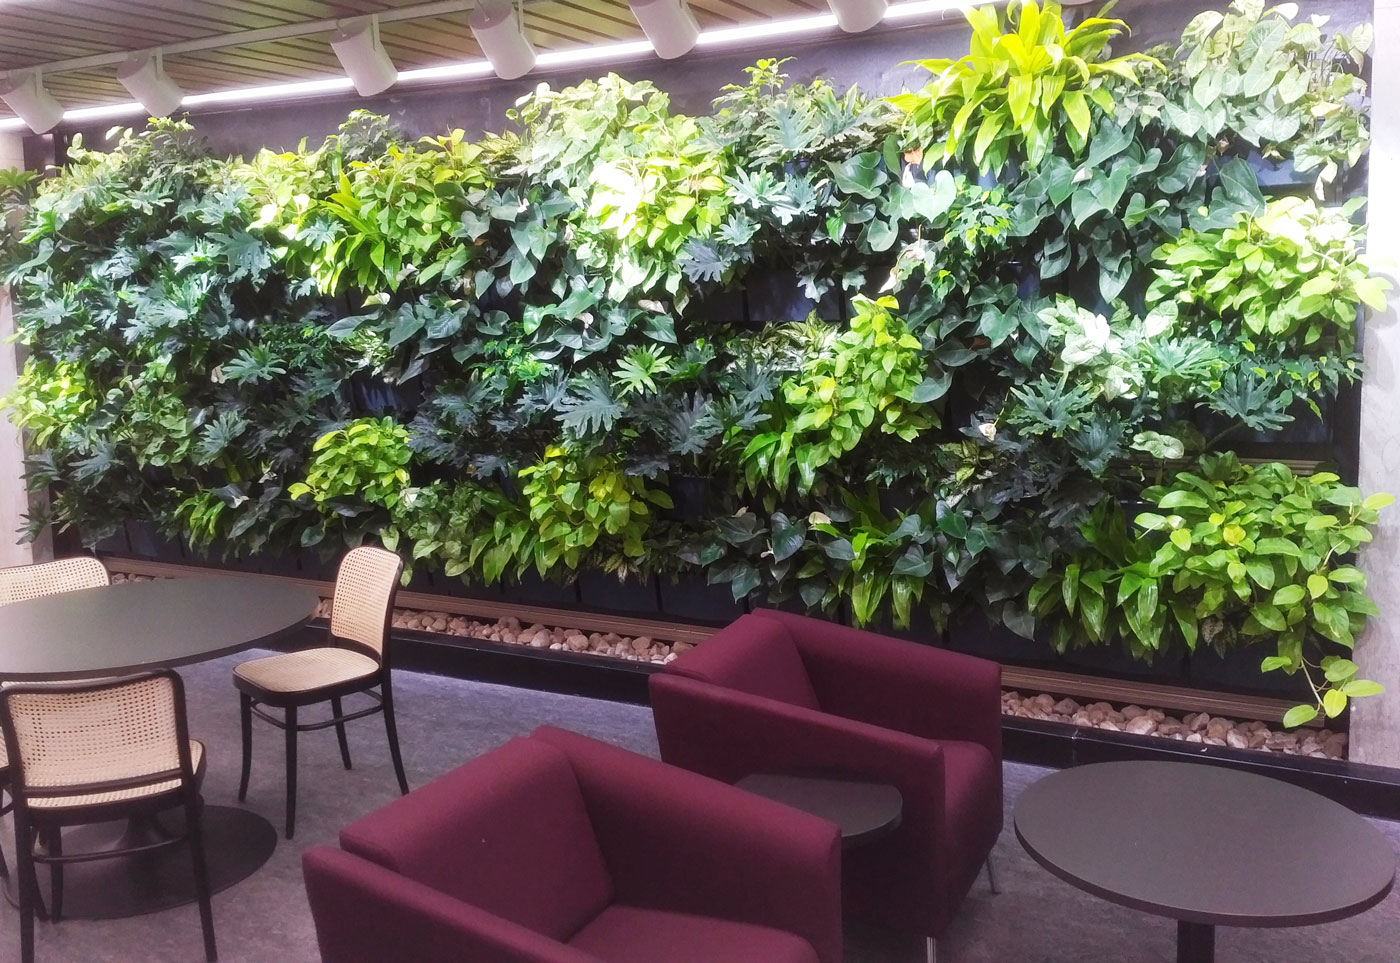 Trent University Bata Library Greenwall Featured Image